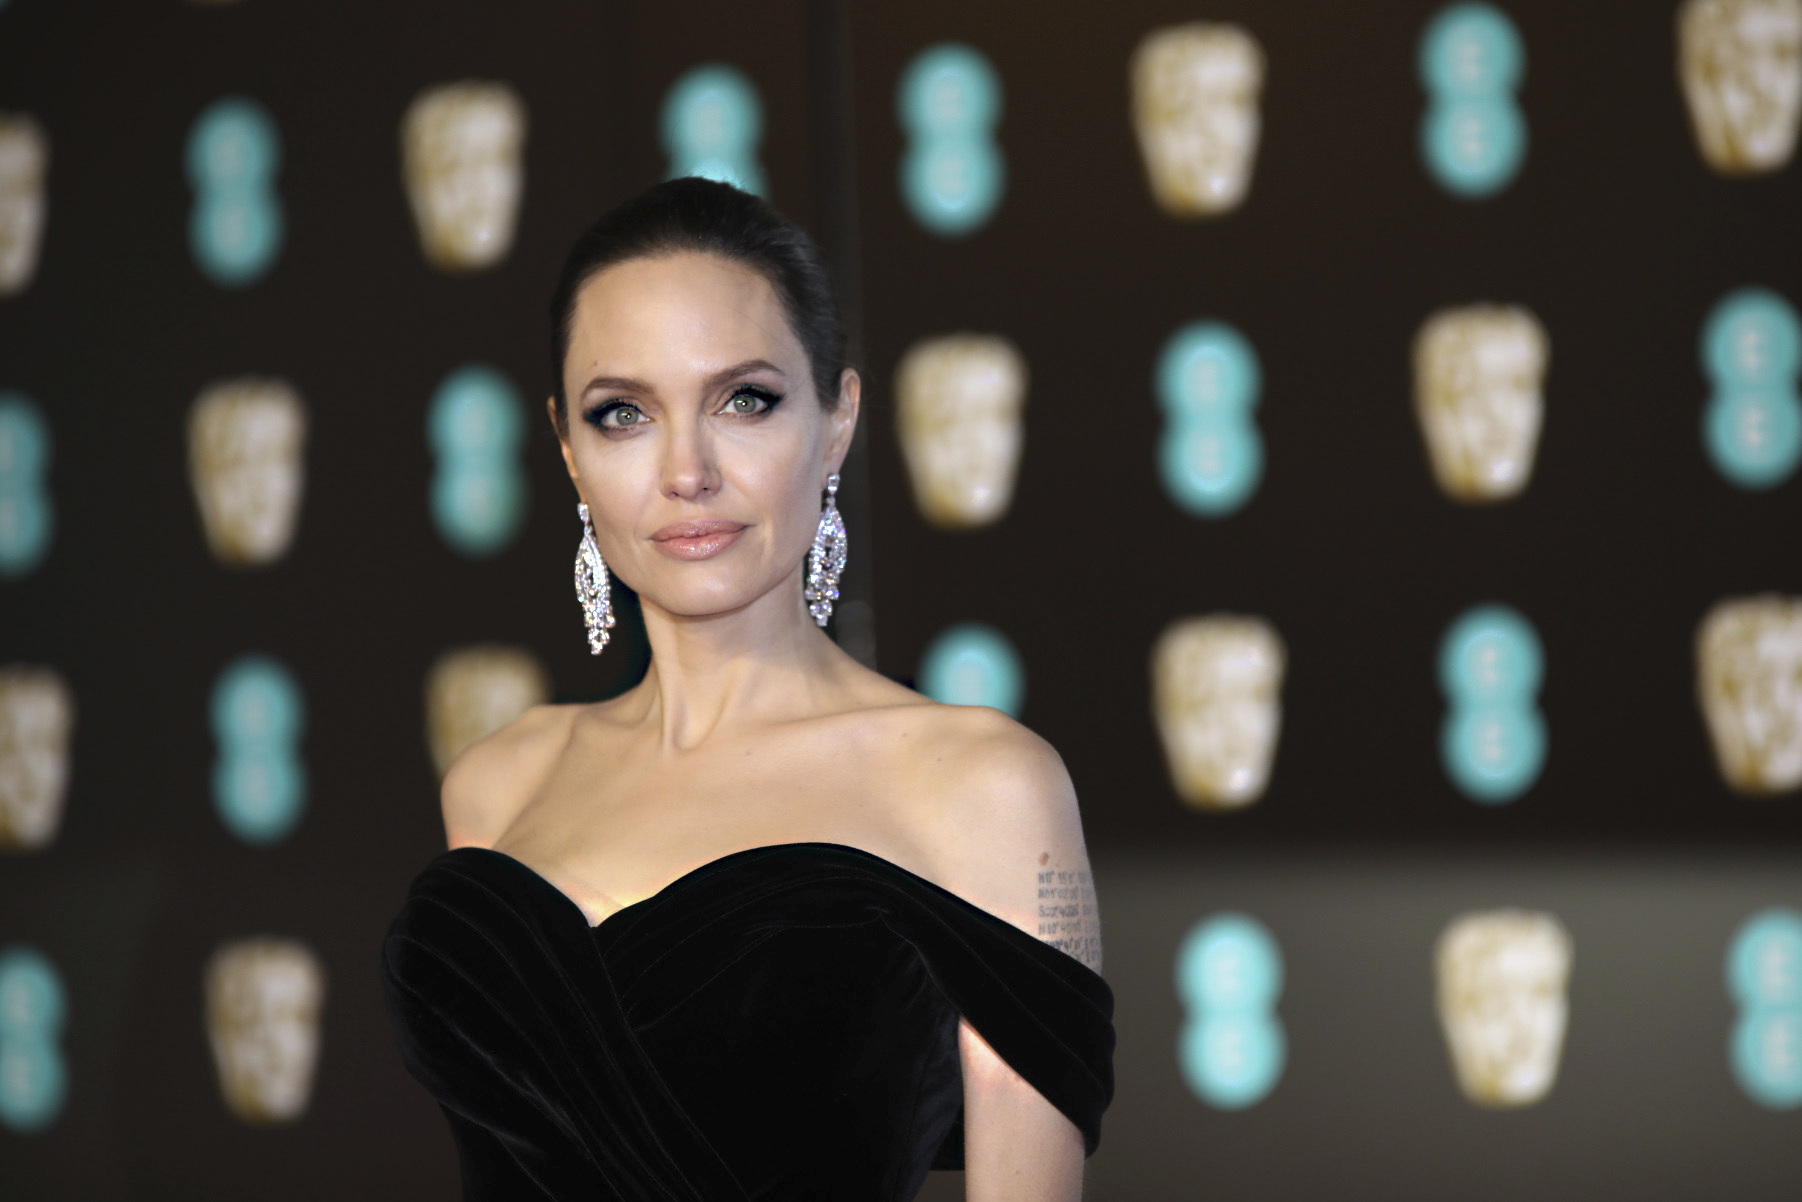 <div class='meta'><div class='origin-logo' data-origin='AP'></div><span class='caption-text' data-credit='Vianney Le Caer/Invision/AP'>Actress Angelina Jolie poses for photographers upon arrival at the BAFTA Awards 2018 in London, Sunday, Feb. 18, 2018.</span></div>